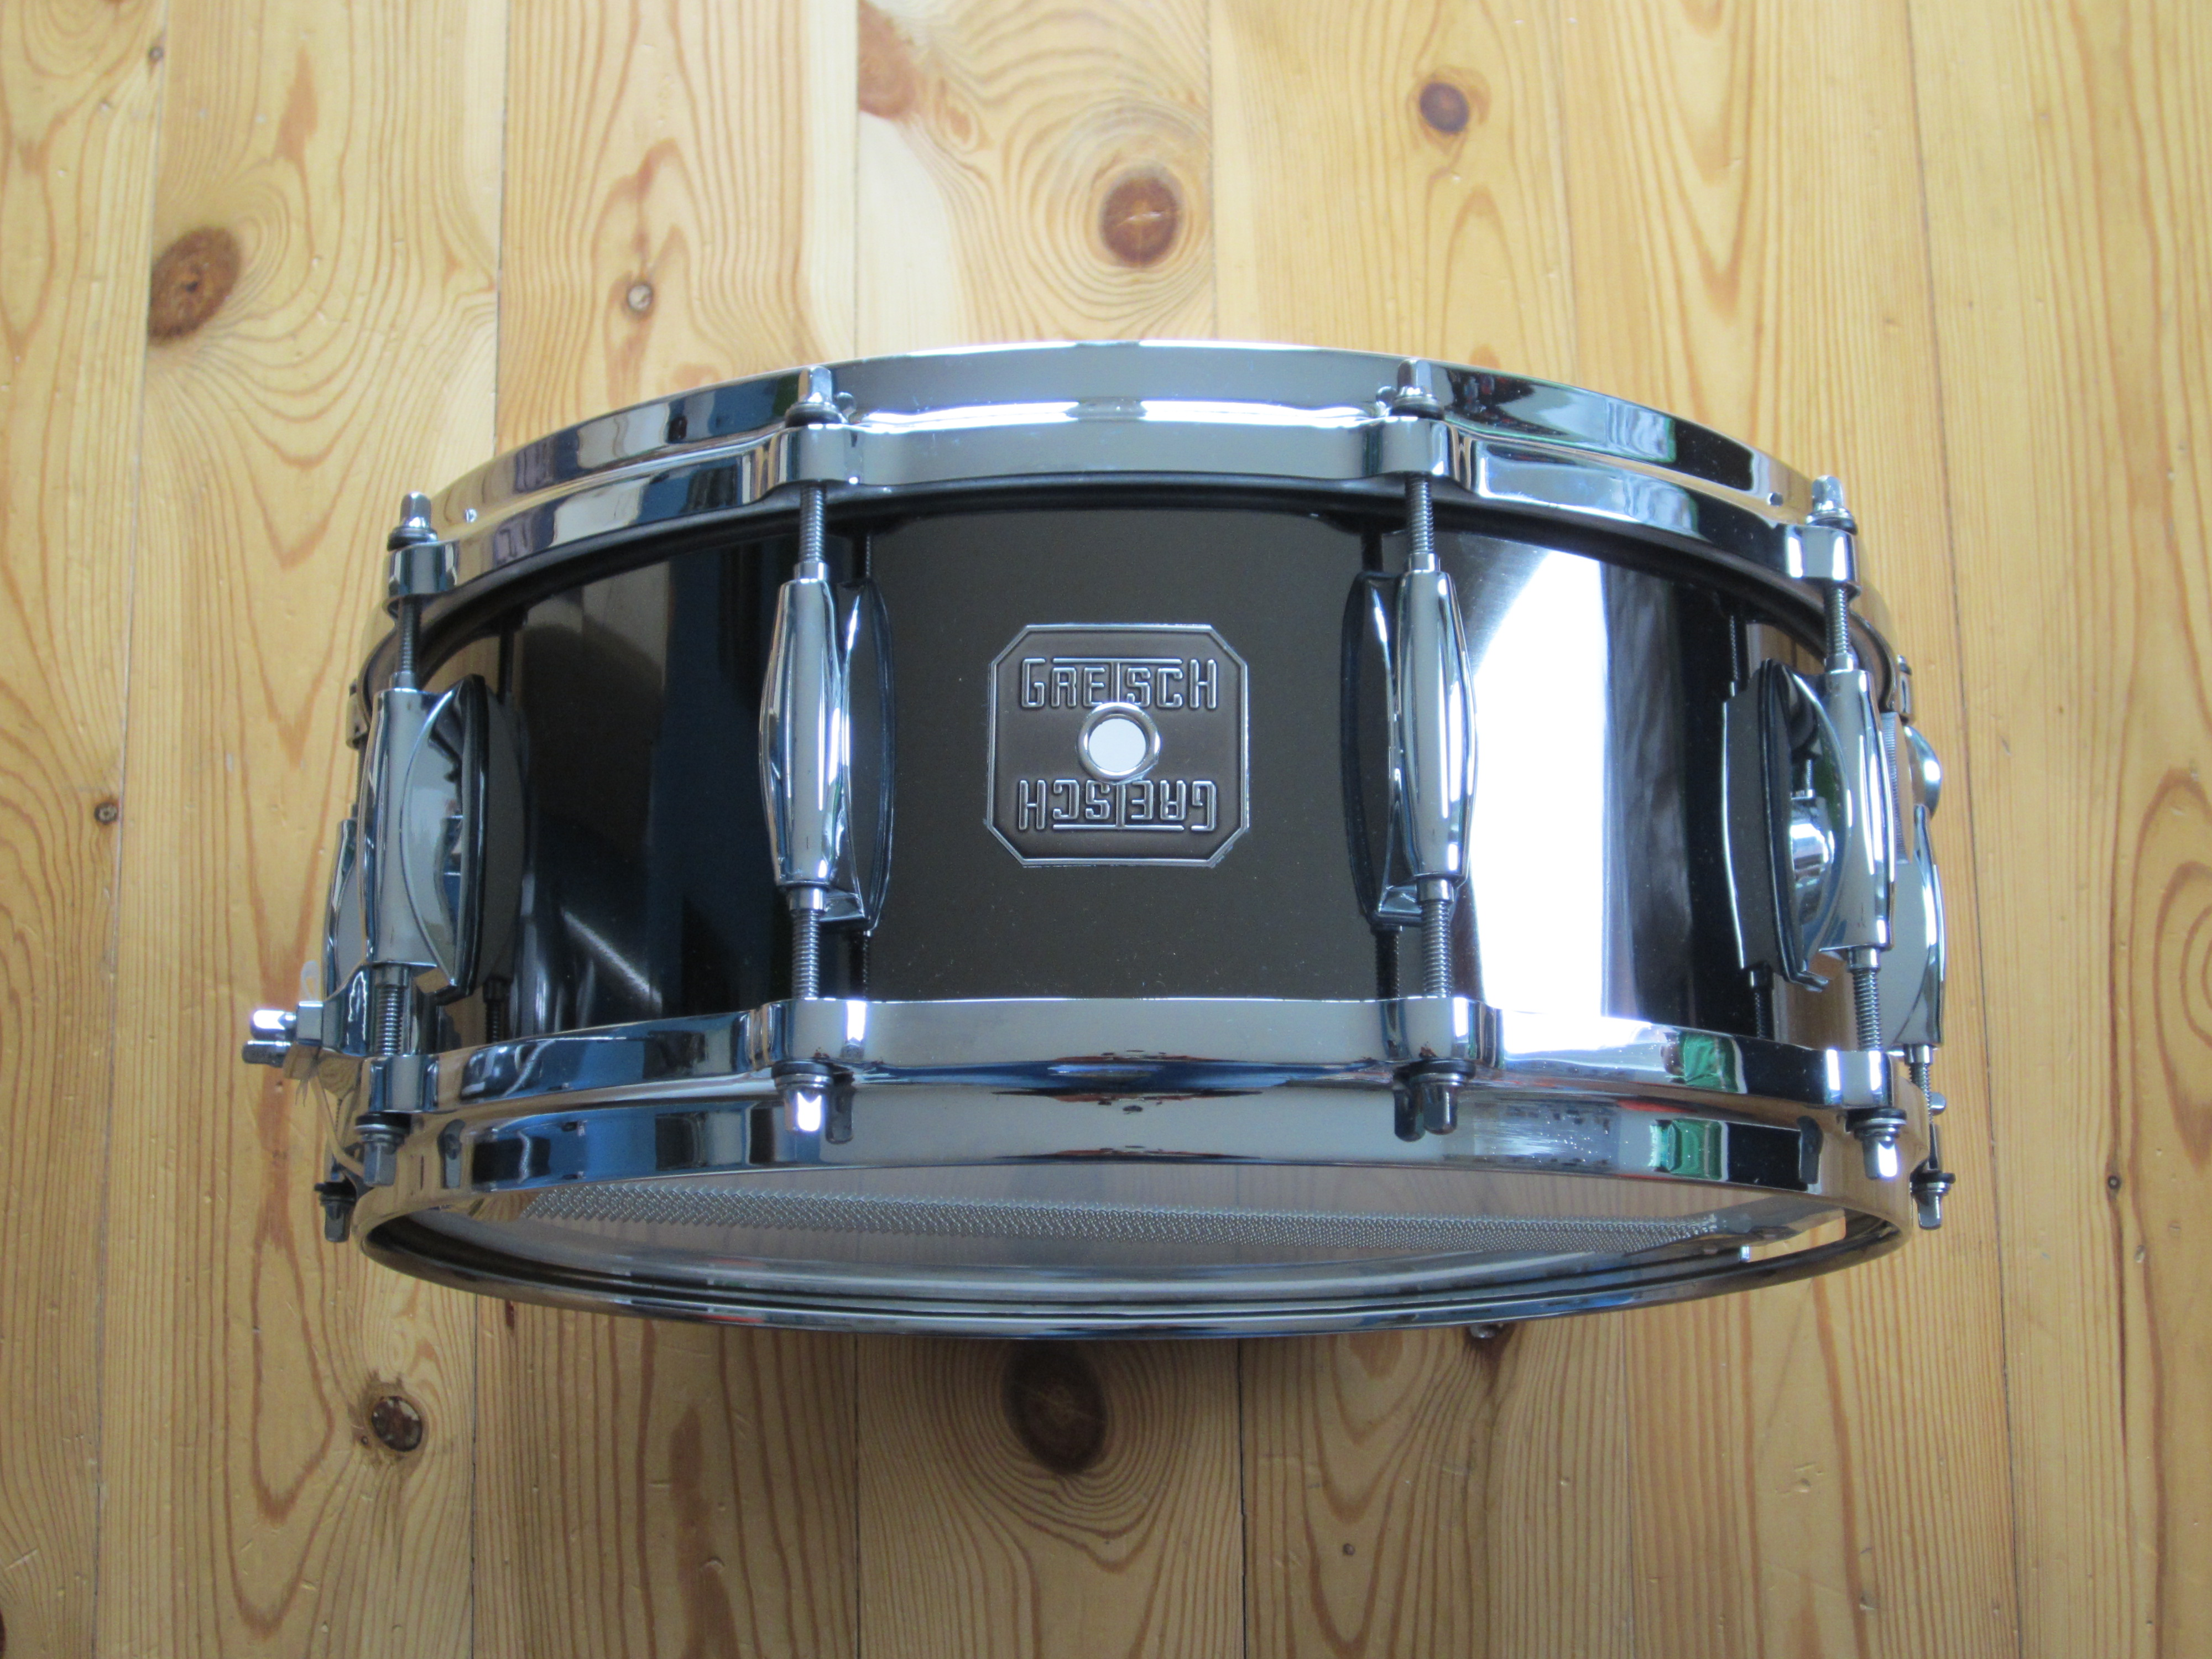 Gretsch Crystal Tone 14x5,5 Nickel Plated snare